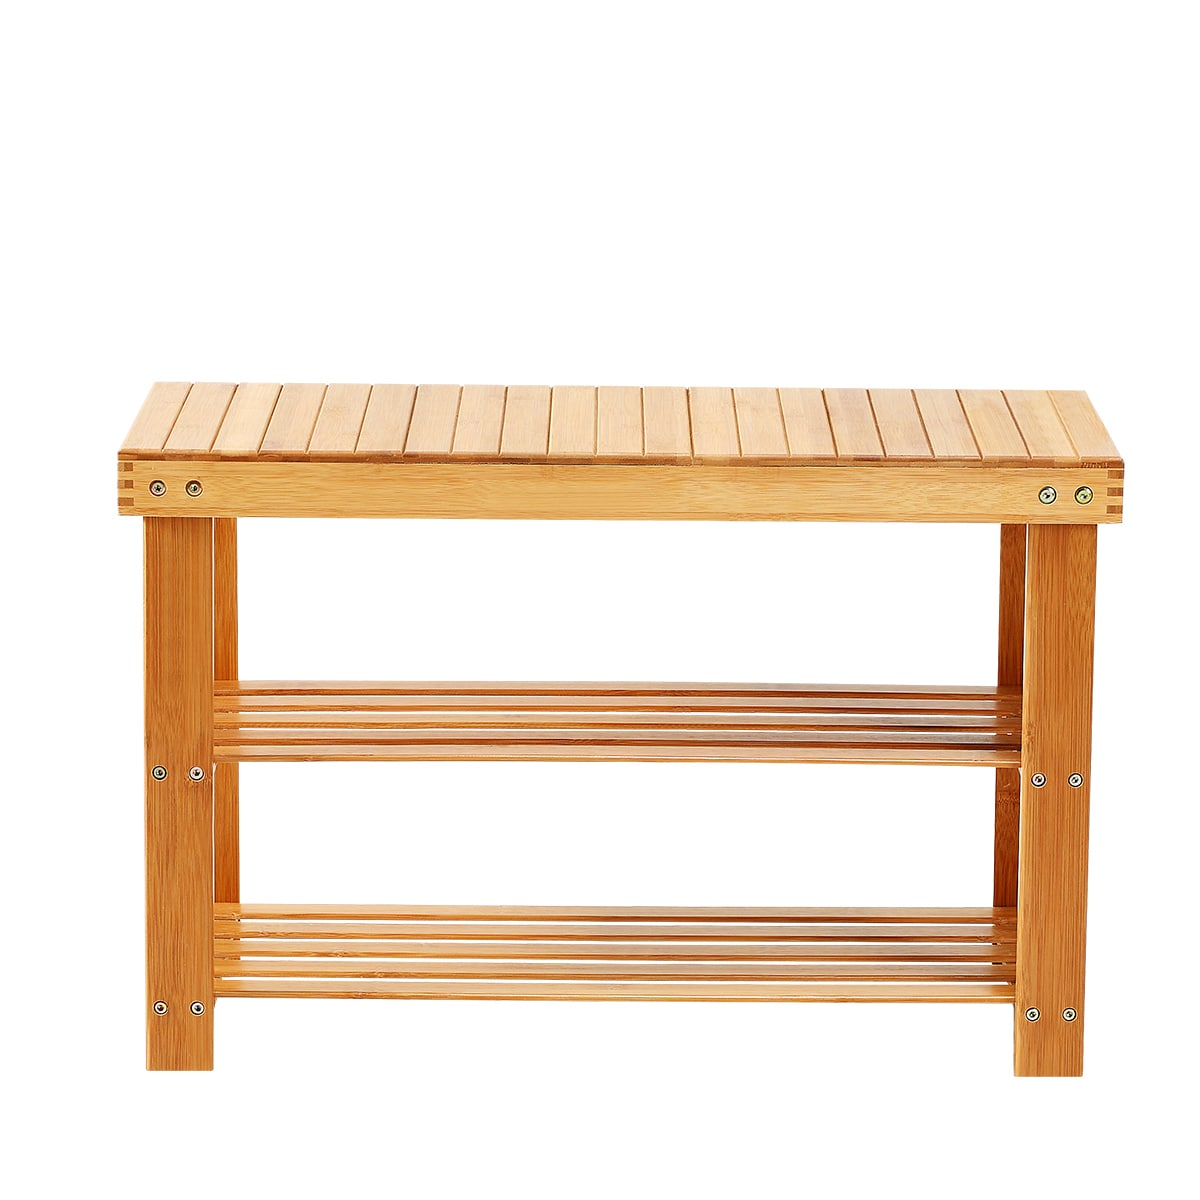 Somette New Ridge Home Natural Bamboo Shoe Rack Bench 2 T...